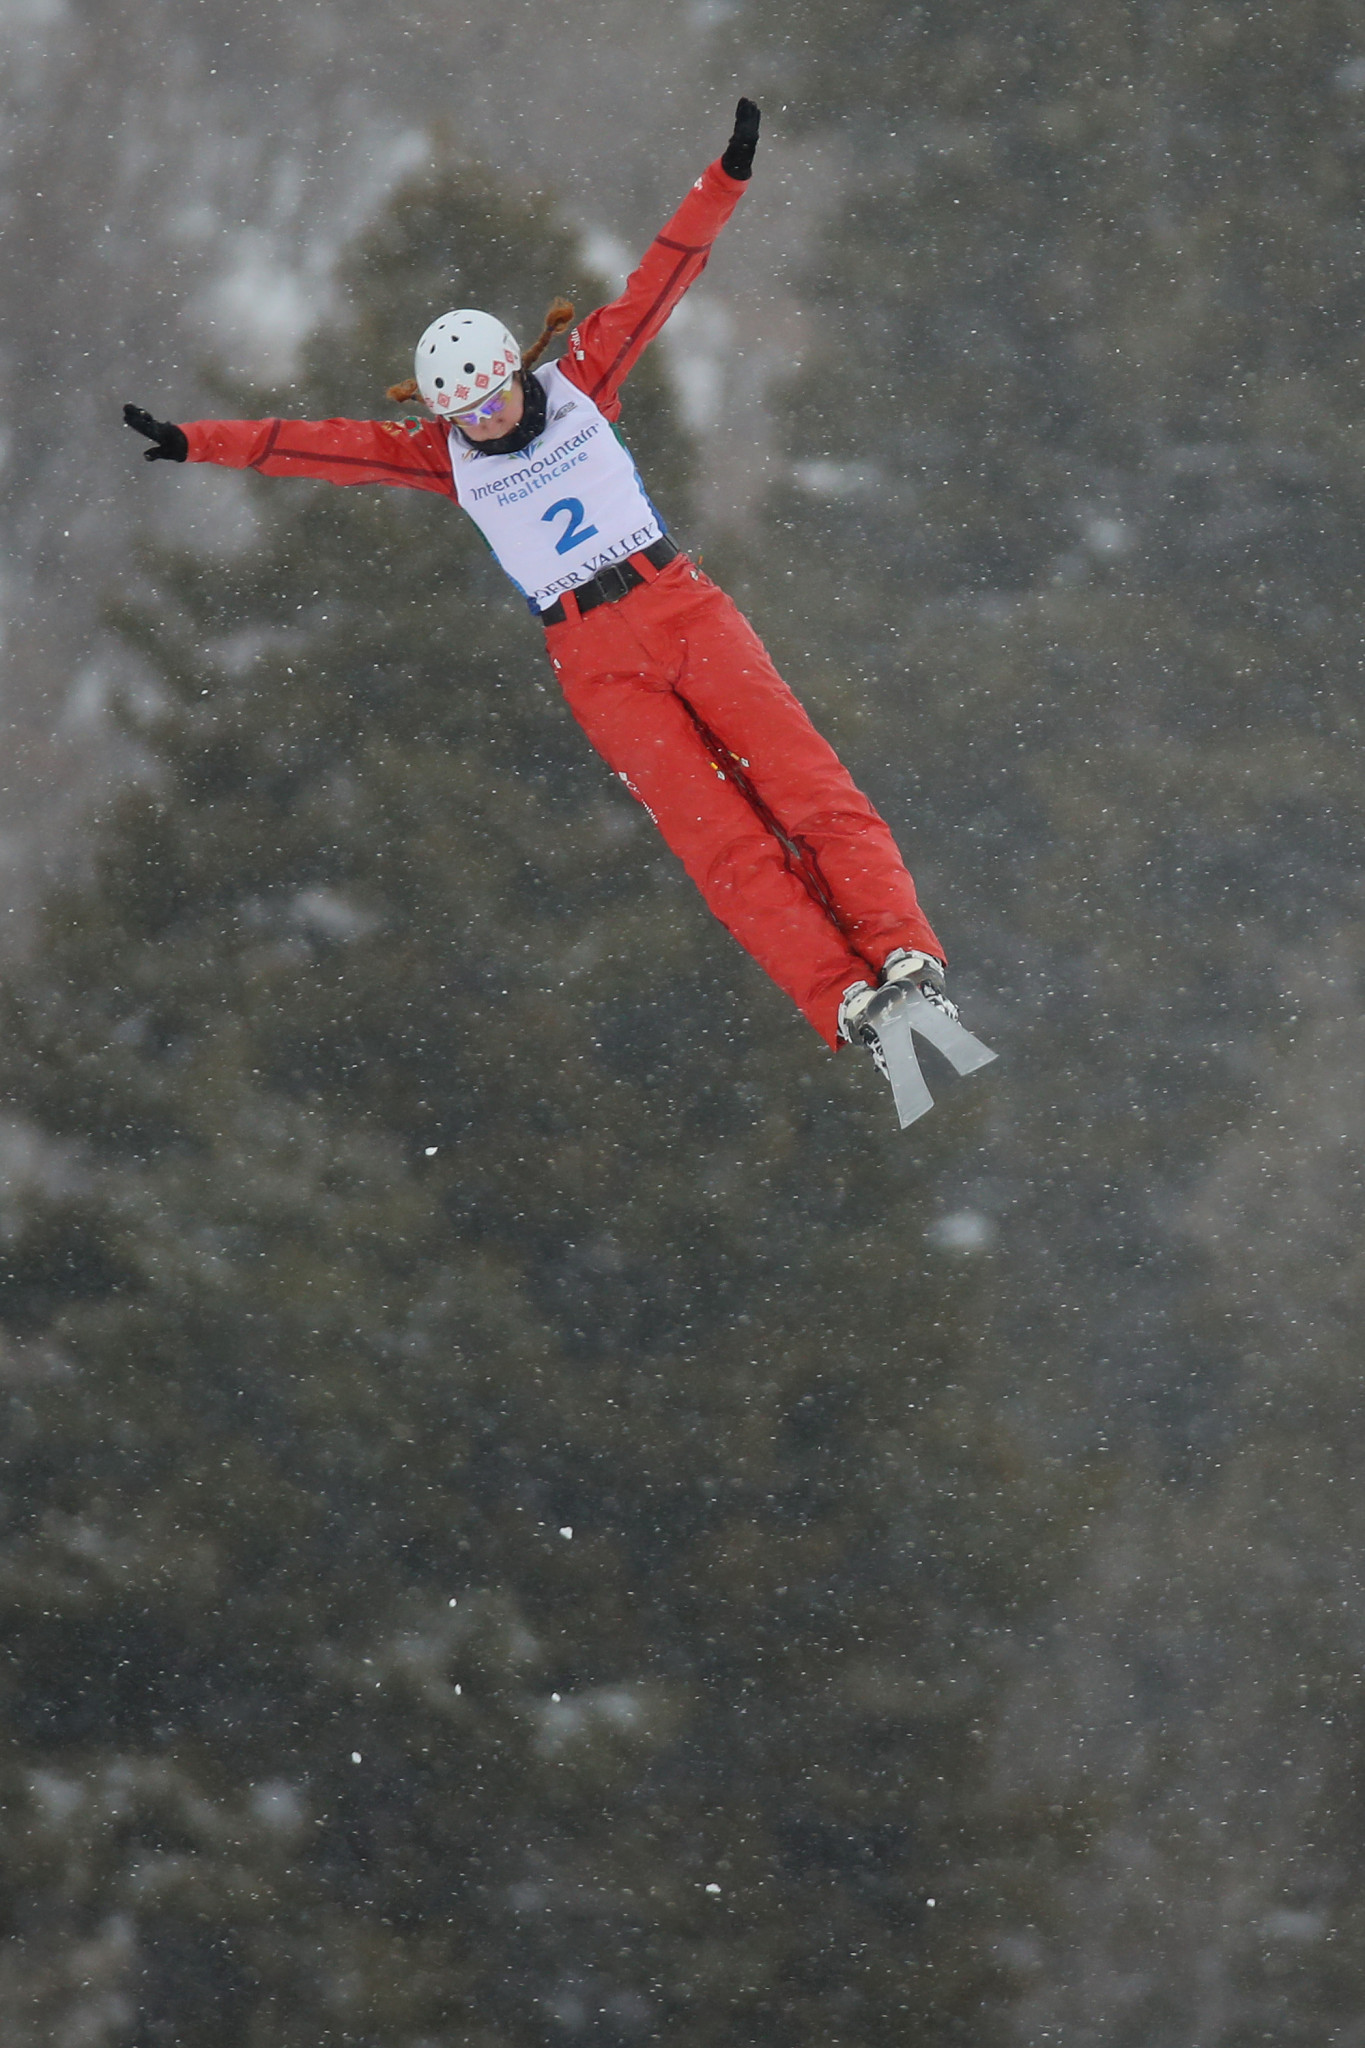 Belarus look to win on home soil at FIS Aerials World Cup